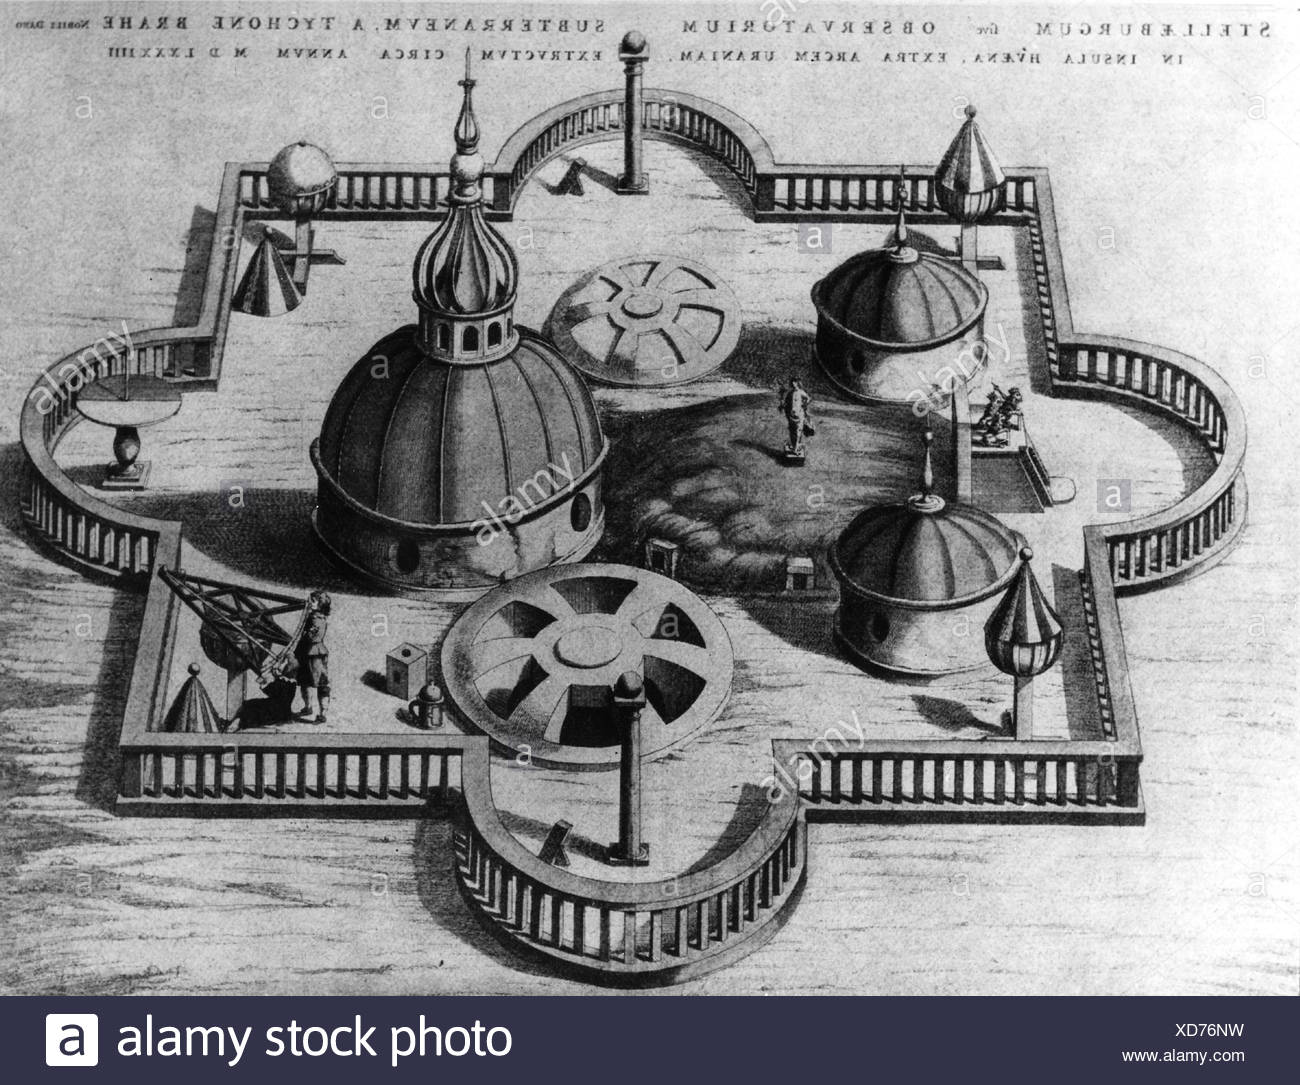 Brahe, Tycho, 14.12.1546 - 24.10.1601, Danish astronomer, observatory Sternburg island Hveen 1584, , Additional-Rights-Clearances-NA - Stock Image